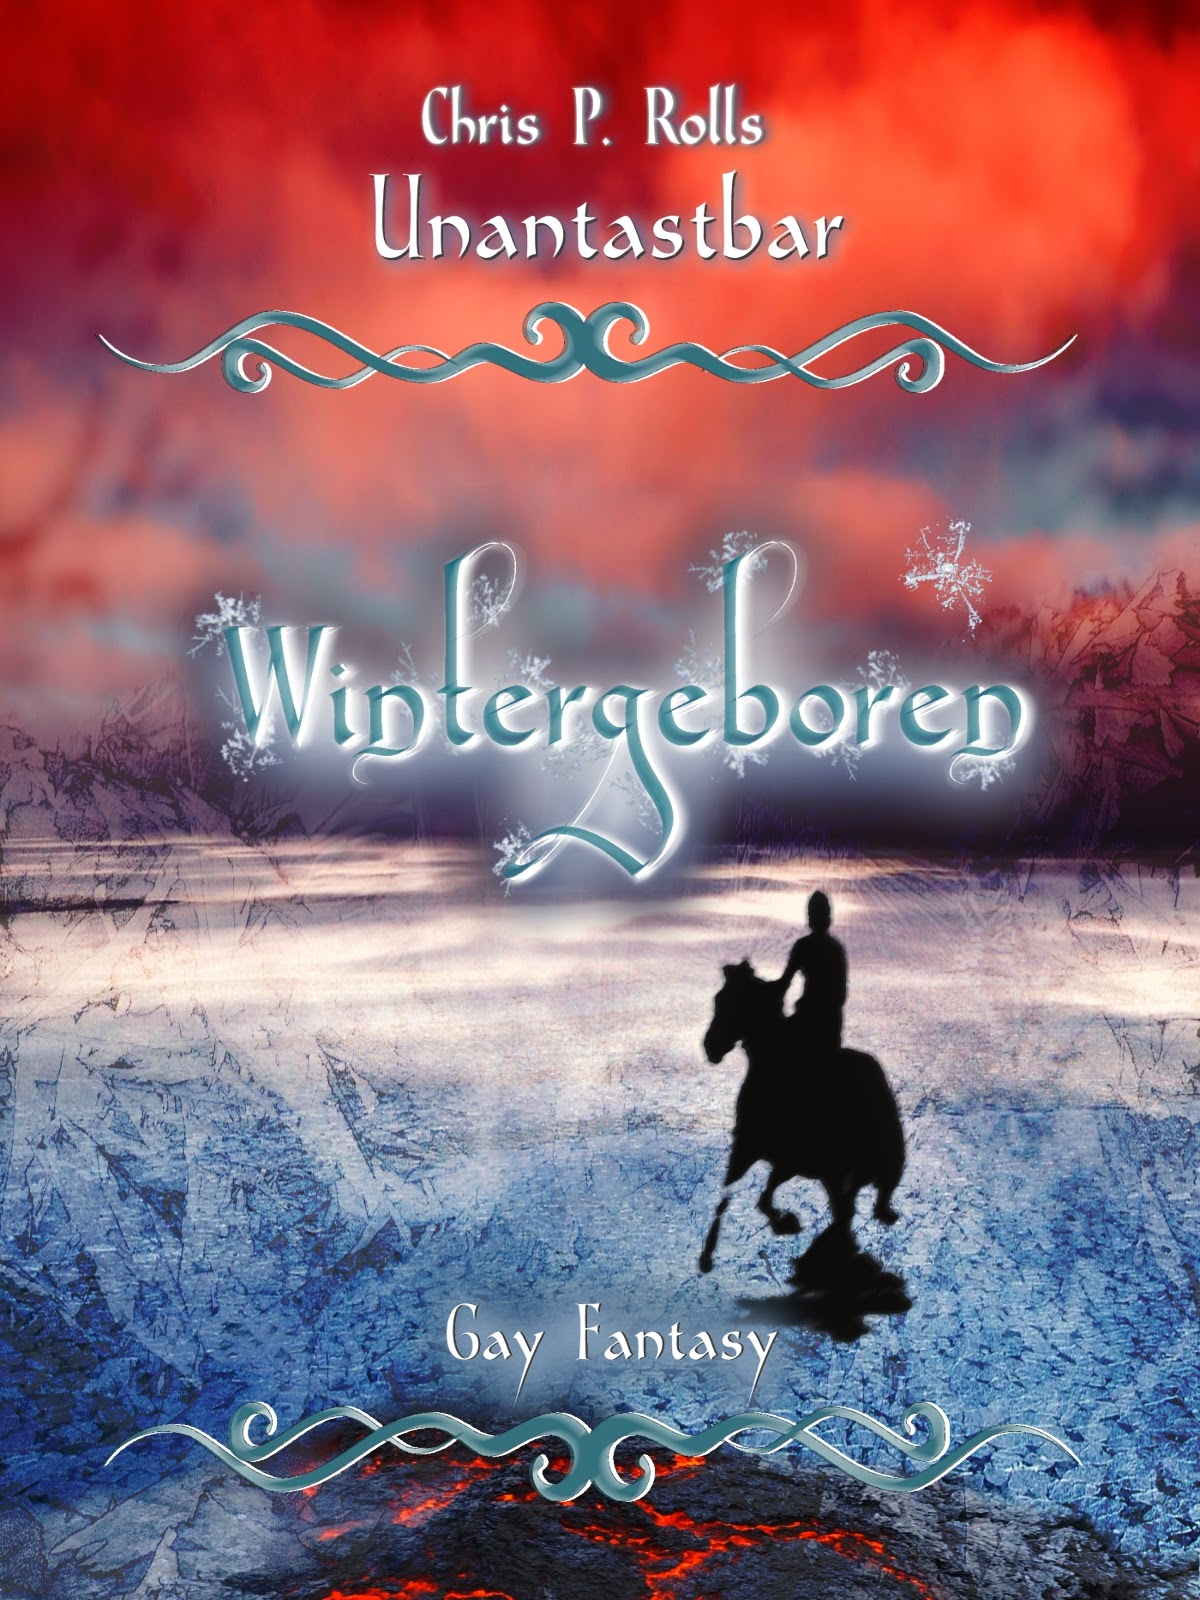 http://www.amazon.de/Unantastbar-Wintergeboren-Chris-P-Rolls-ebook/dp/B00NU7WZ1W